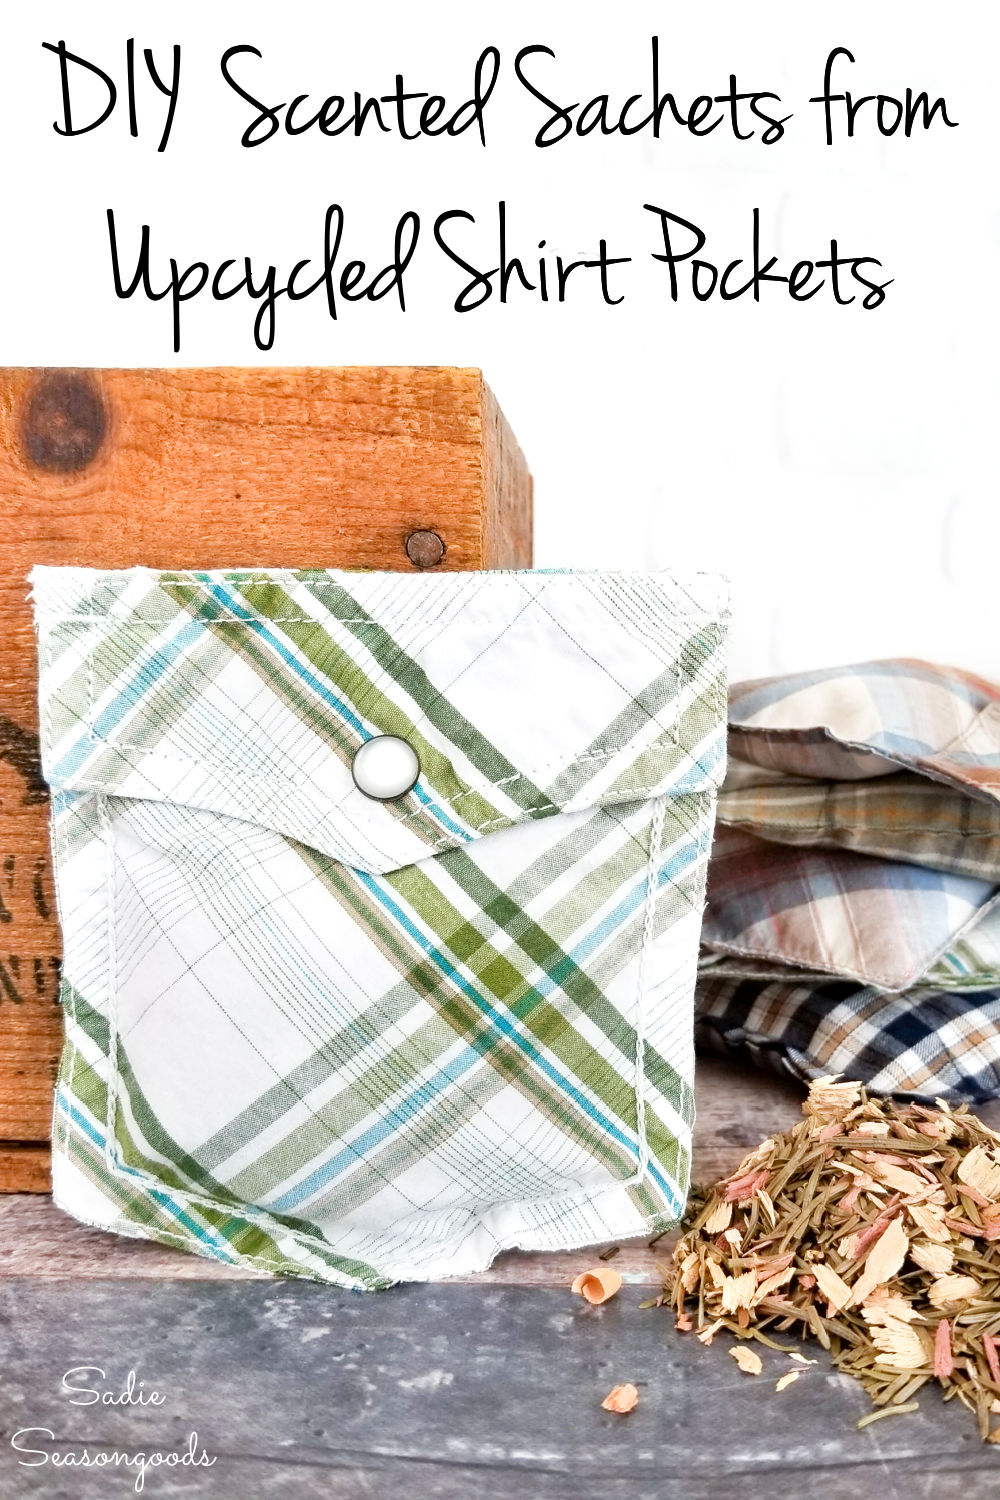 drawer sachets as diy gifts for him